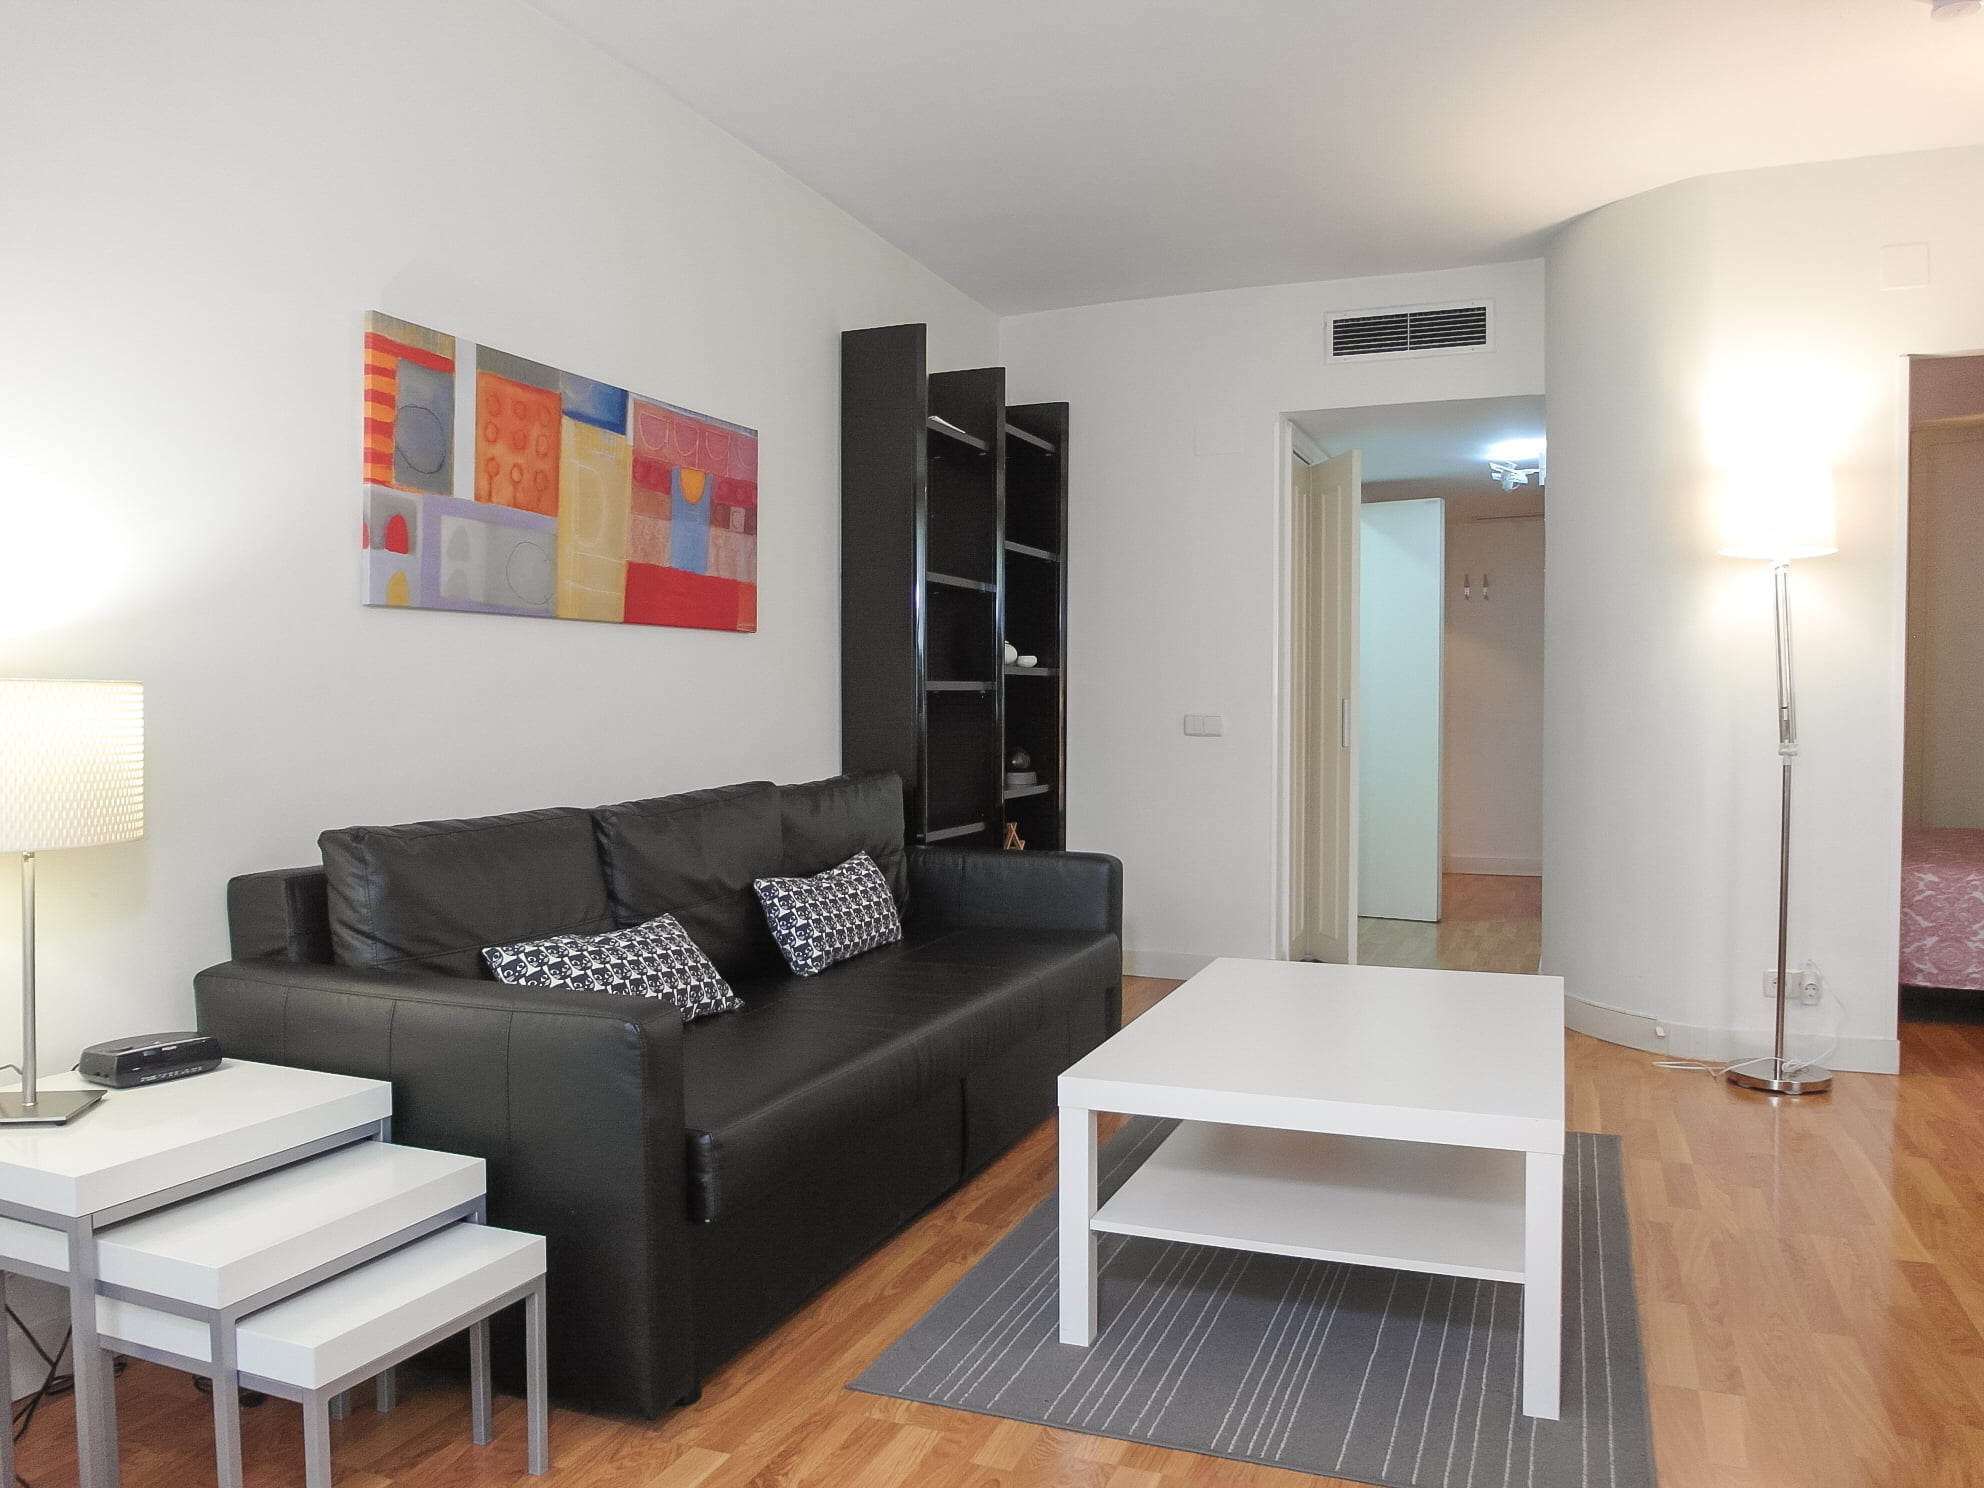 Furnished flat in Madrid for expats